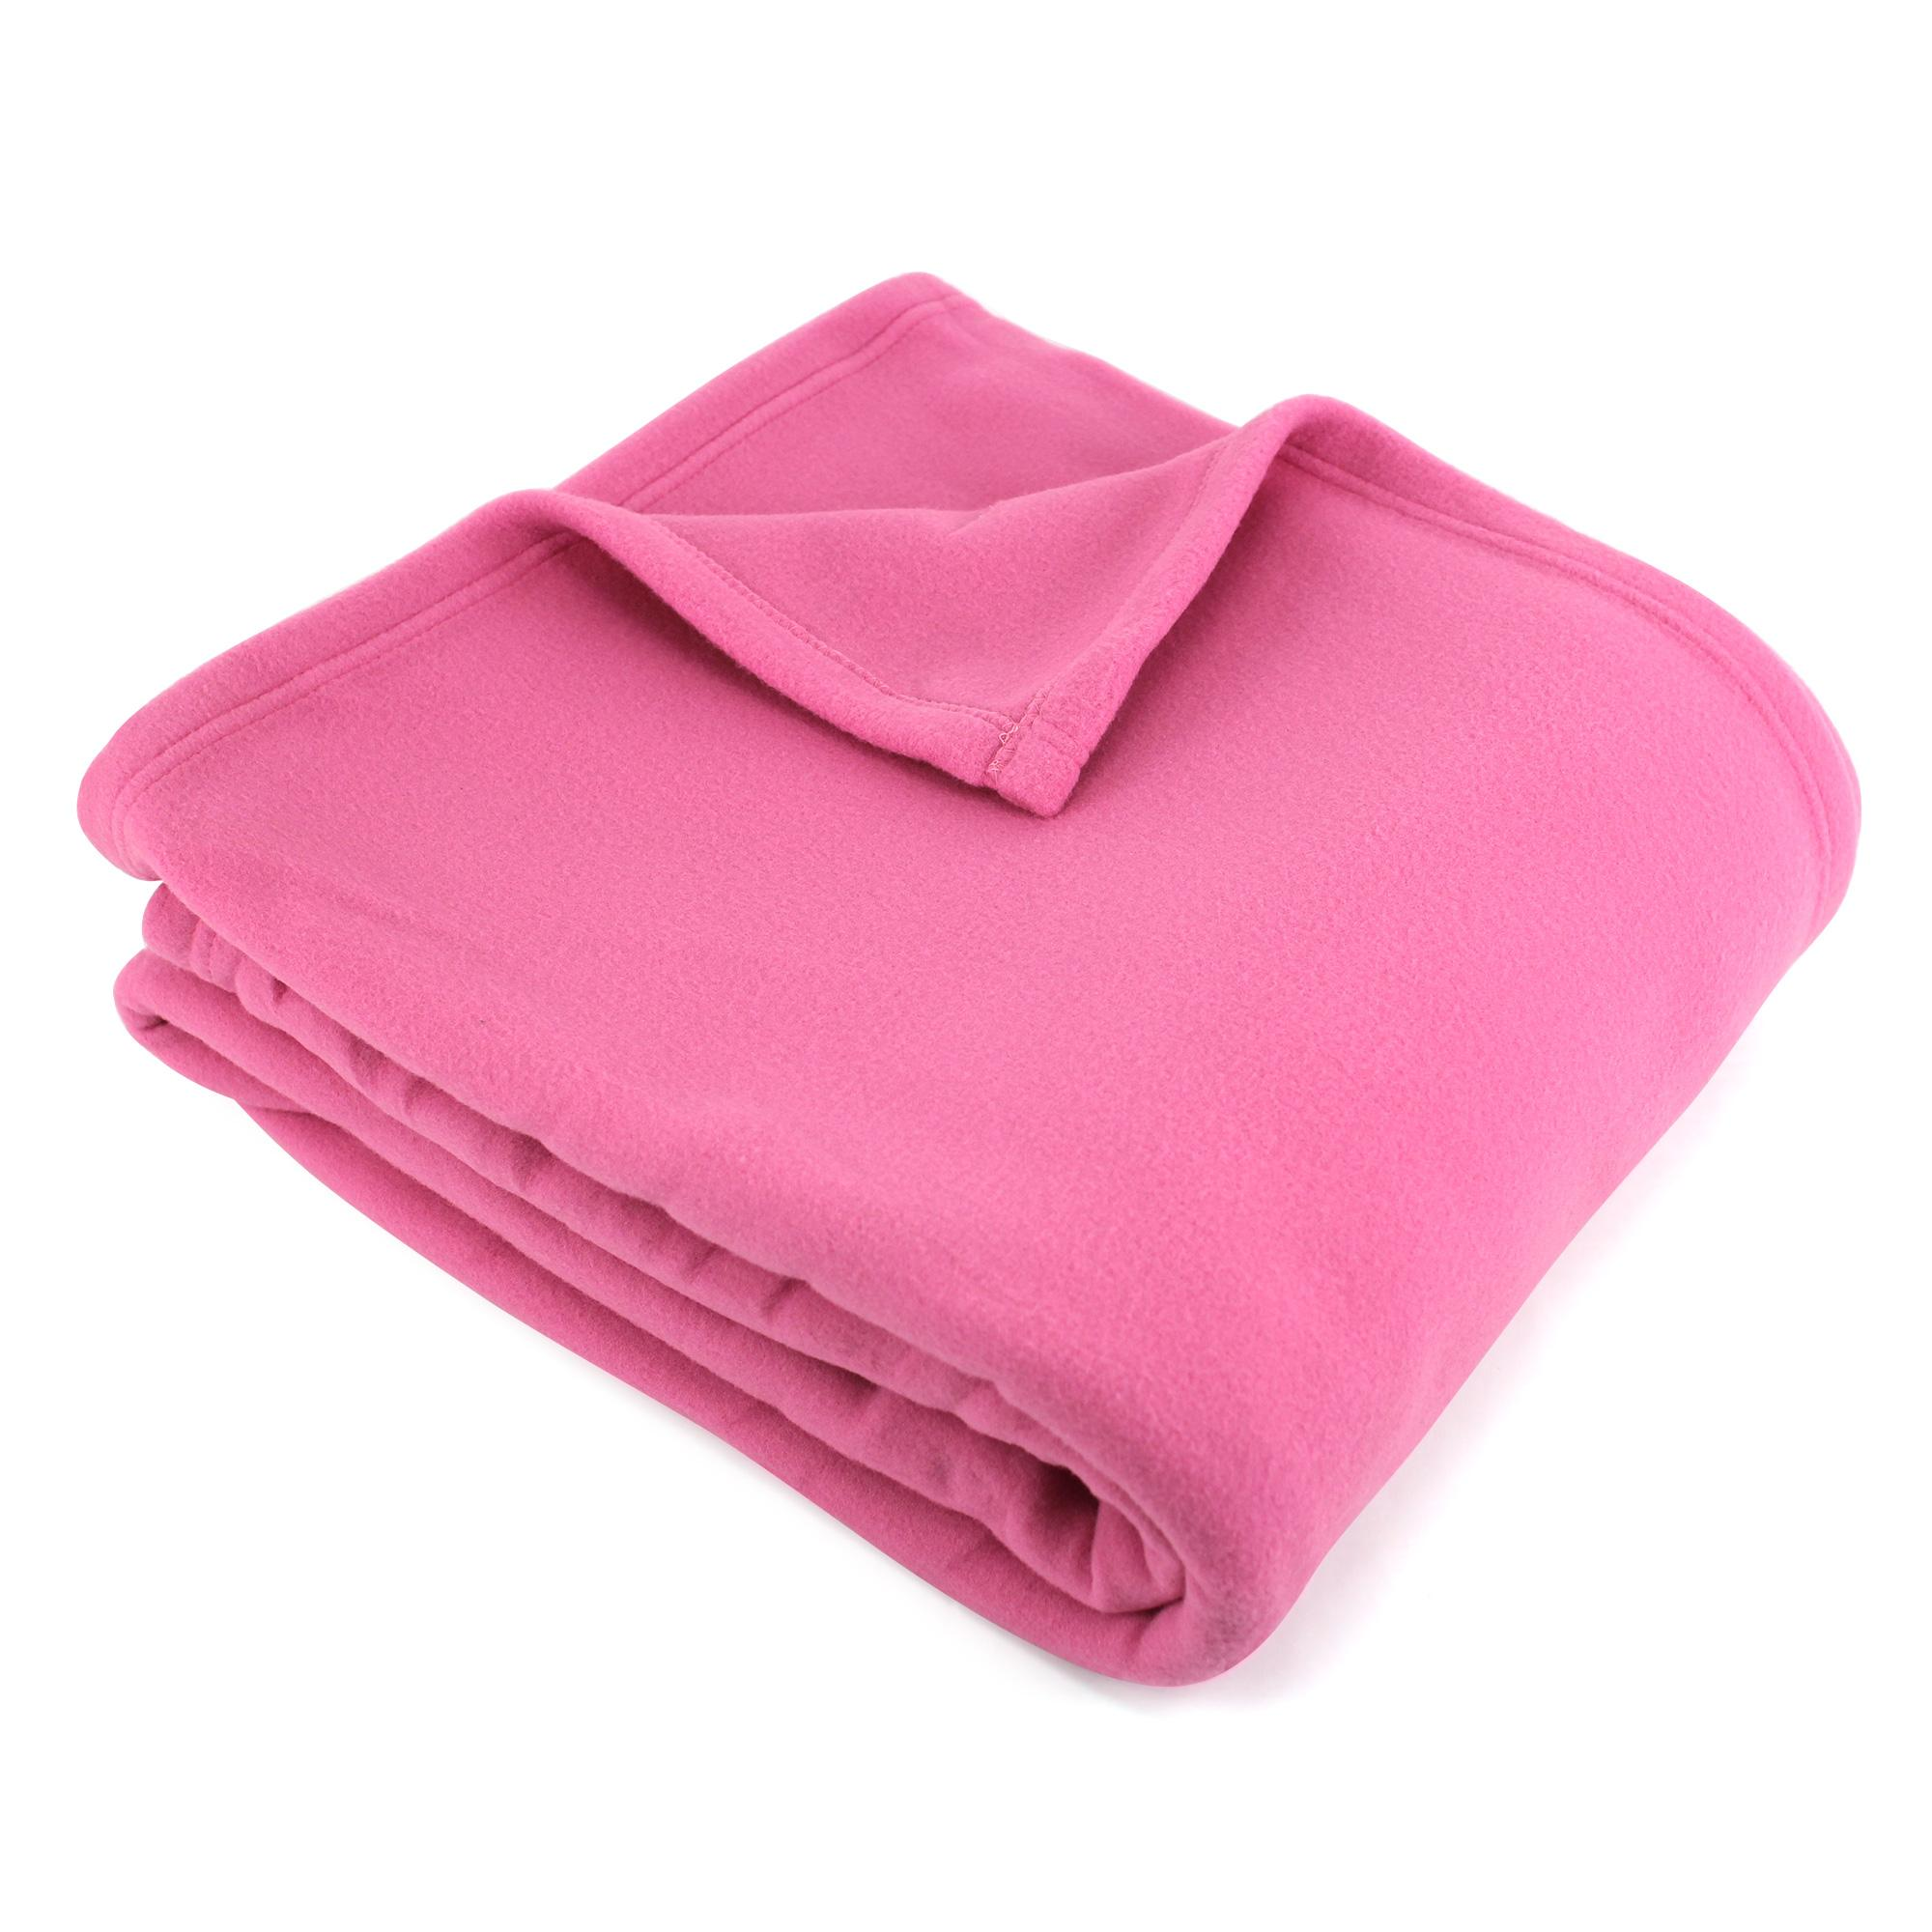 couverture polaire 240x260 100 polyester 350g m2 teddy rose p tunia ebay. Black Bedroom Furniture Sets. Home Design Ideas